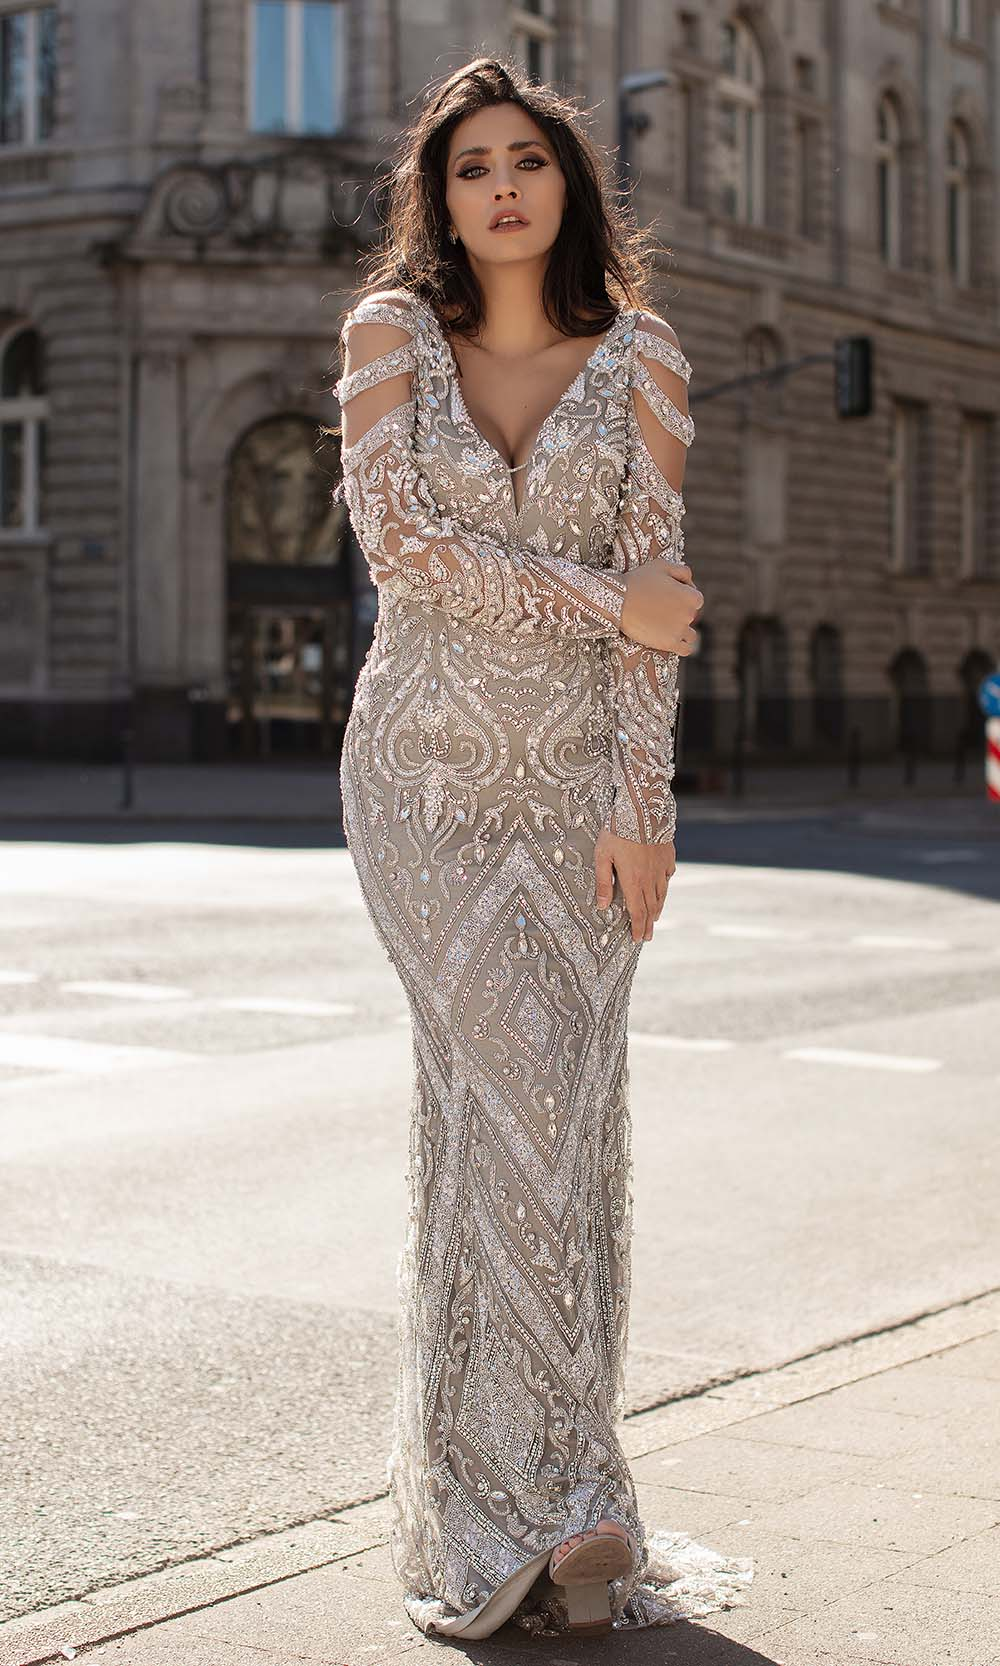 Chic and Holland - HF1597 Cutout Long Sleeves Sequined Dress from Chic and Holland